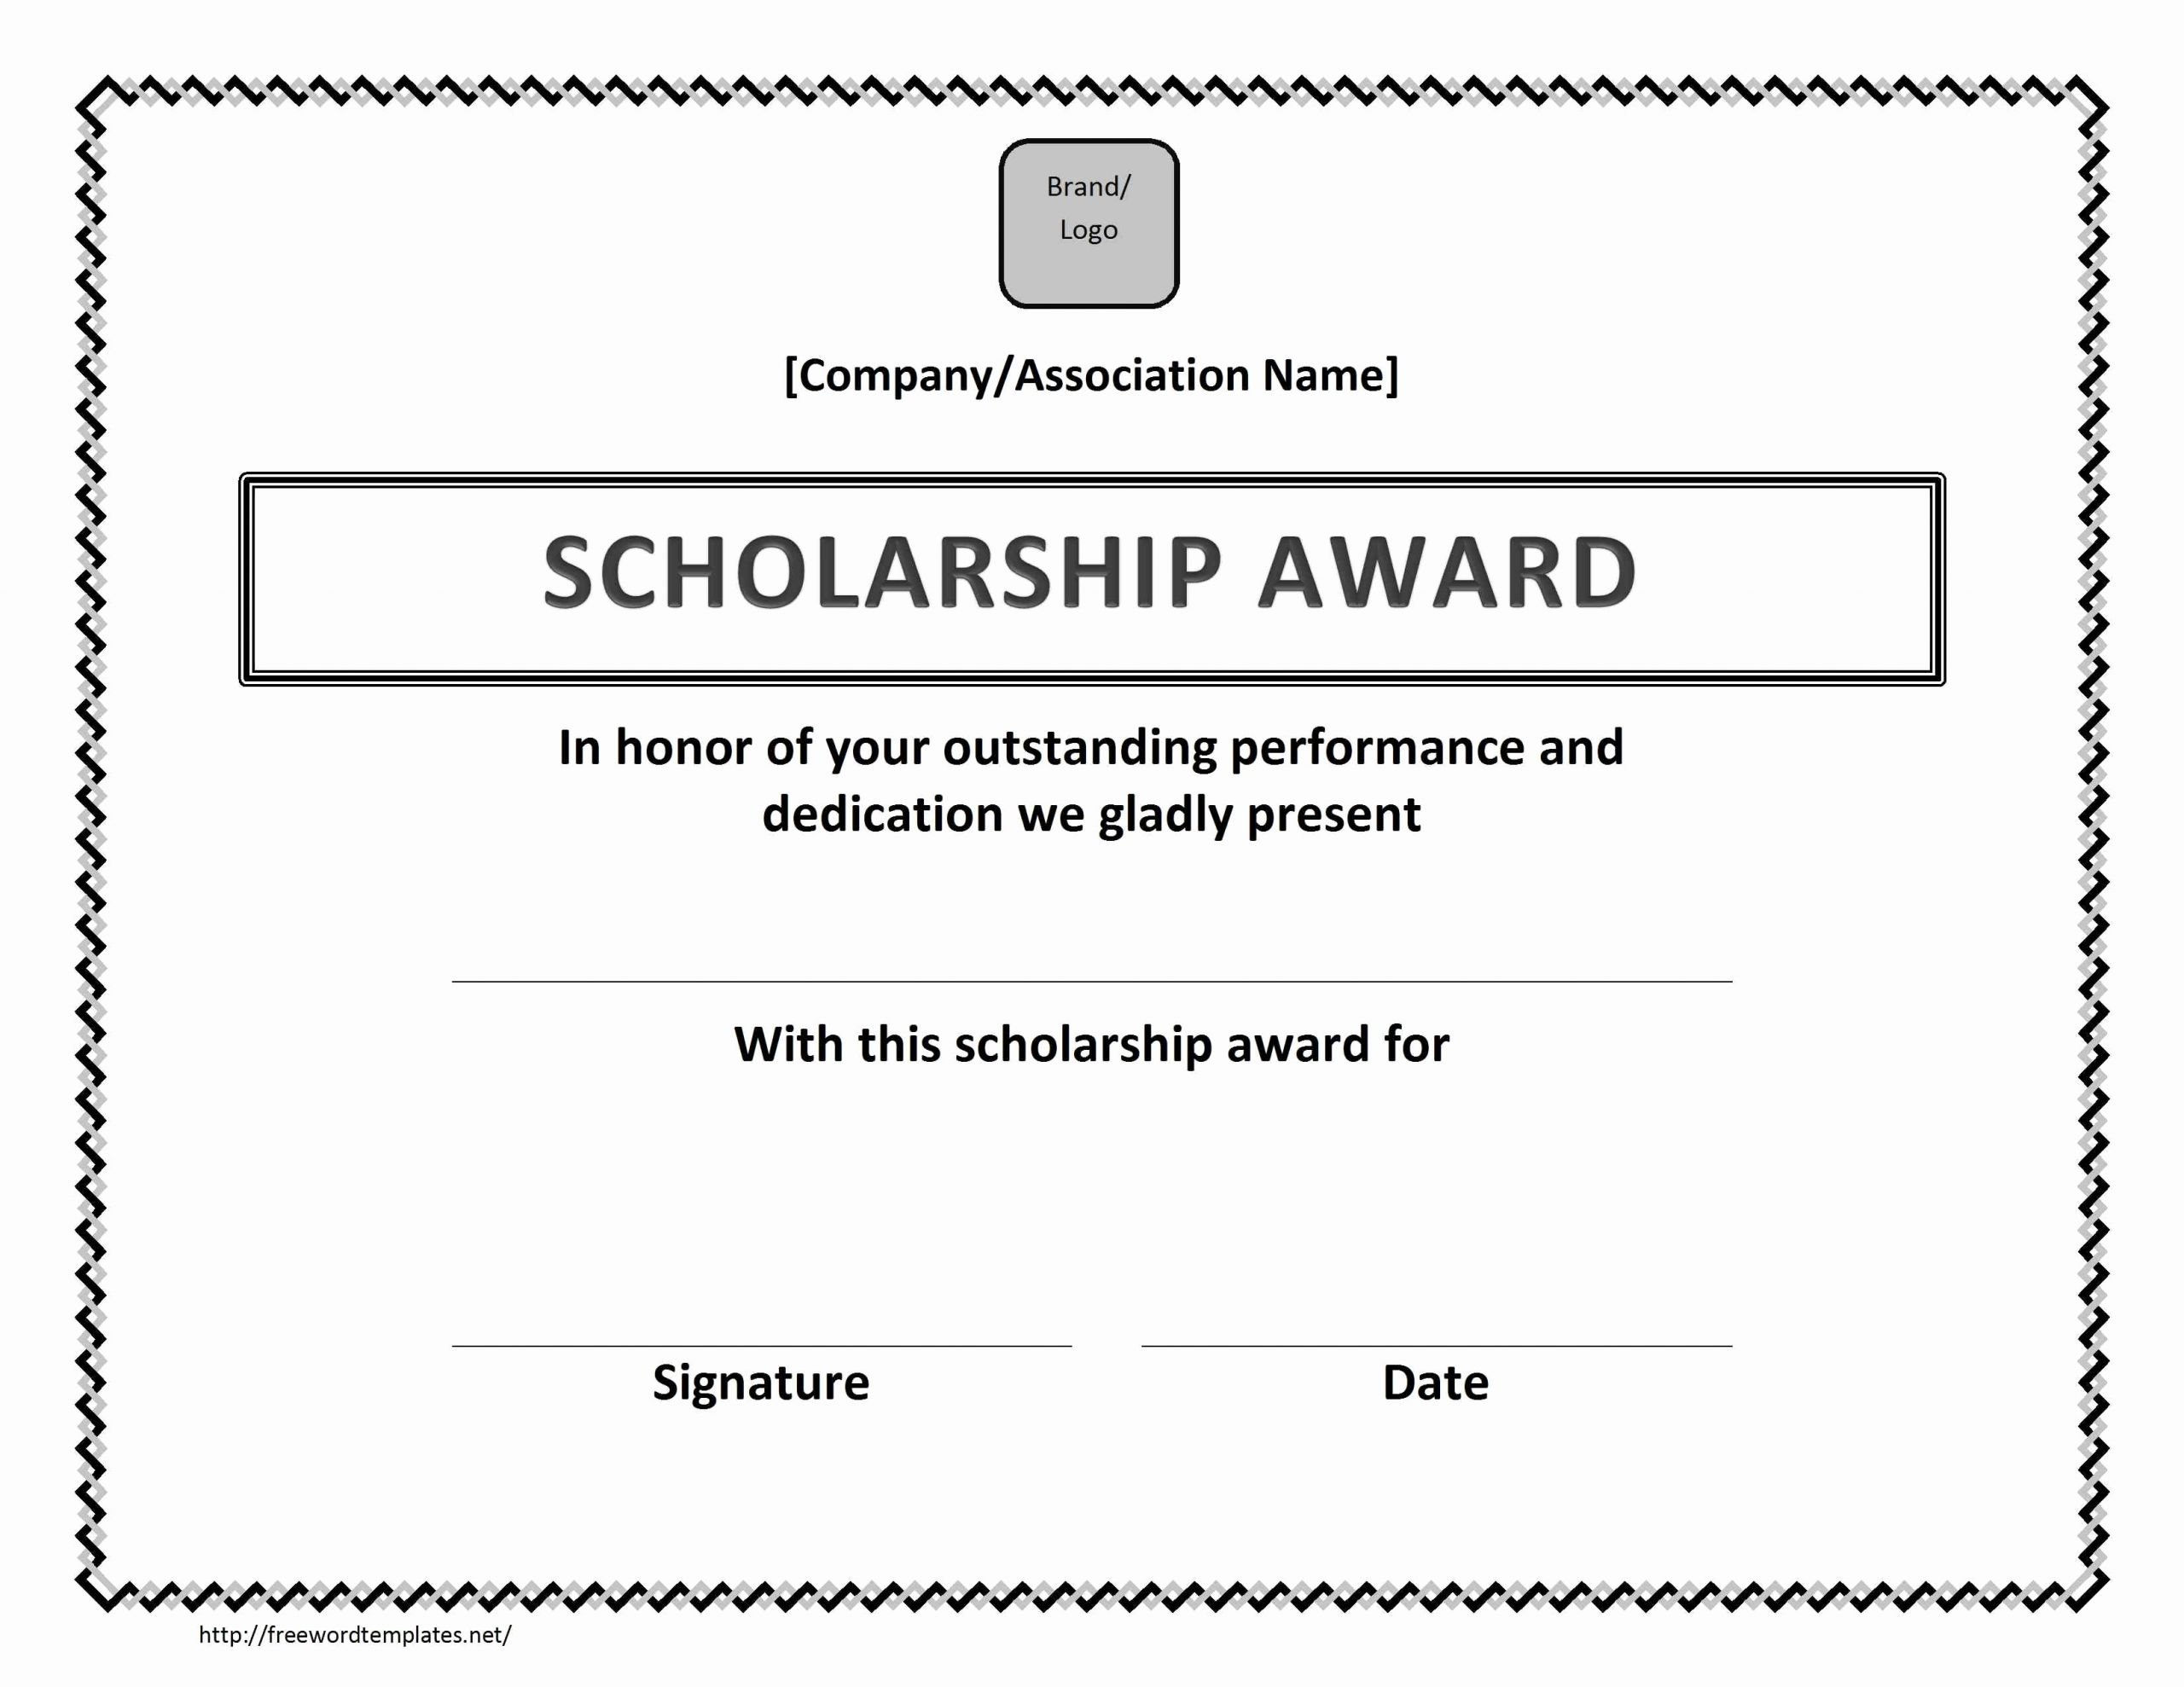 Scholarship Certificate Template Free Unique Scholarship Award Certificate Template